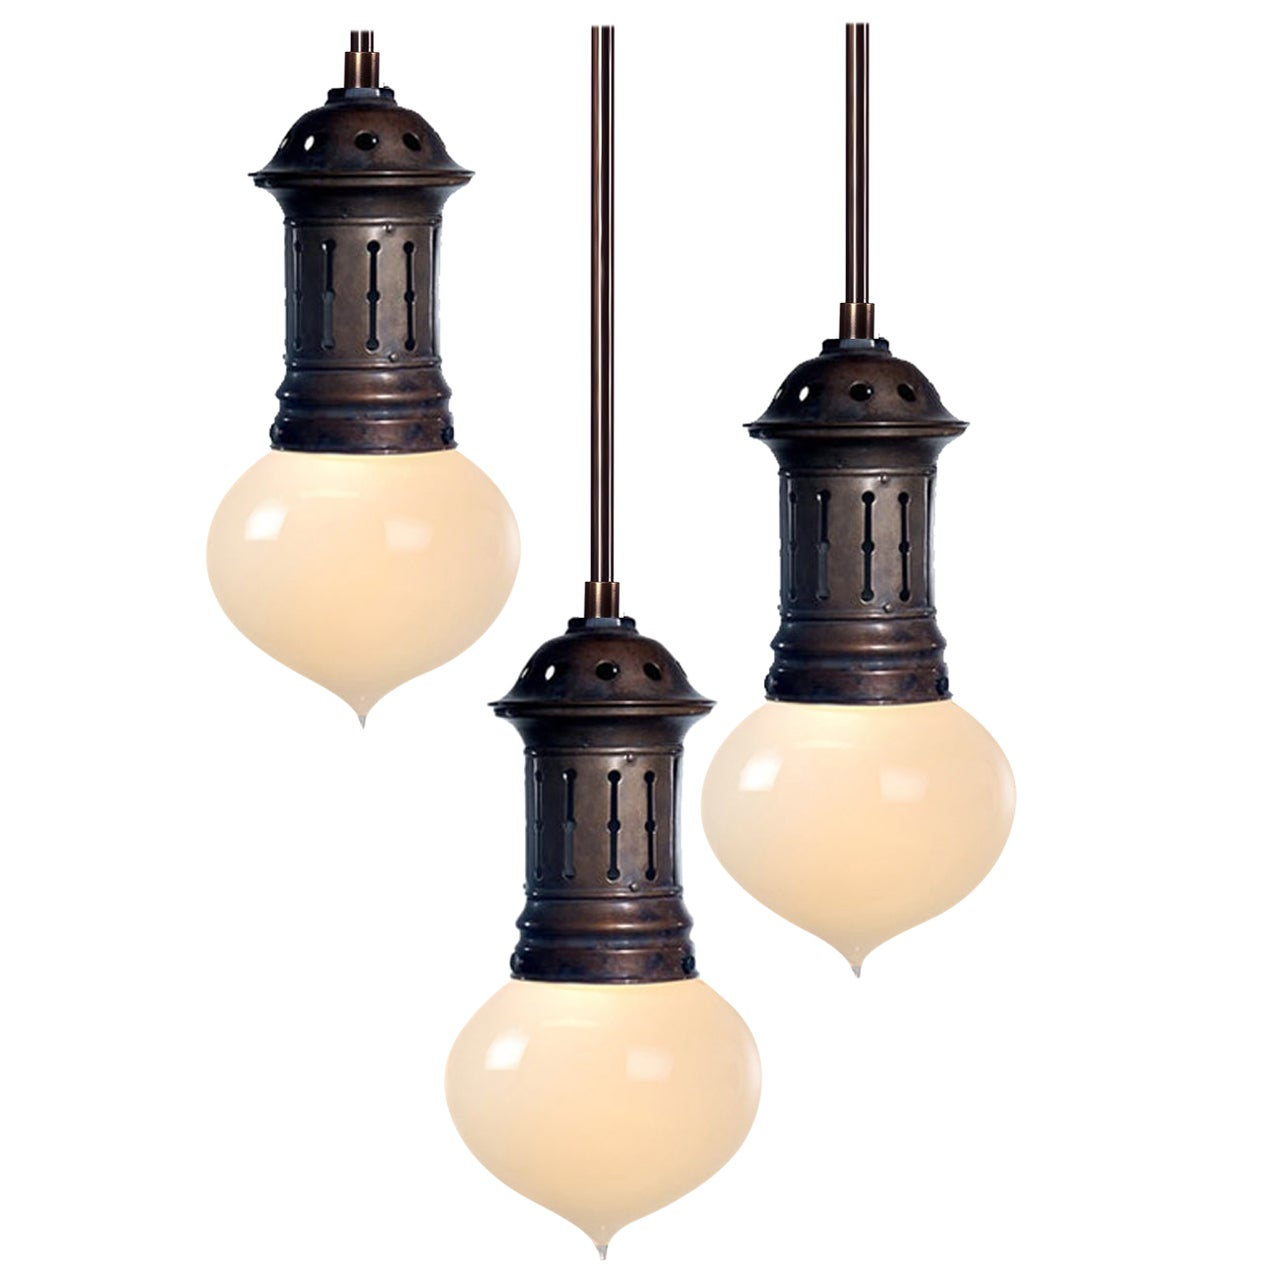 Onion Vaseline Pendents in Vented Copper Fixture